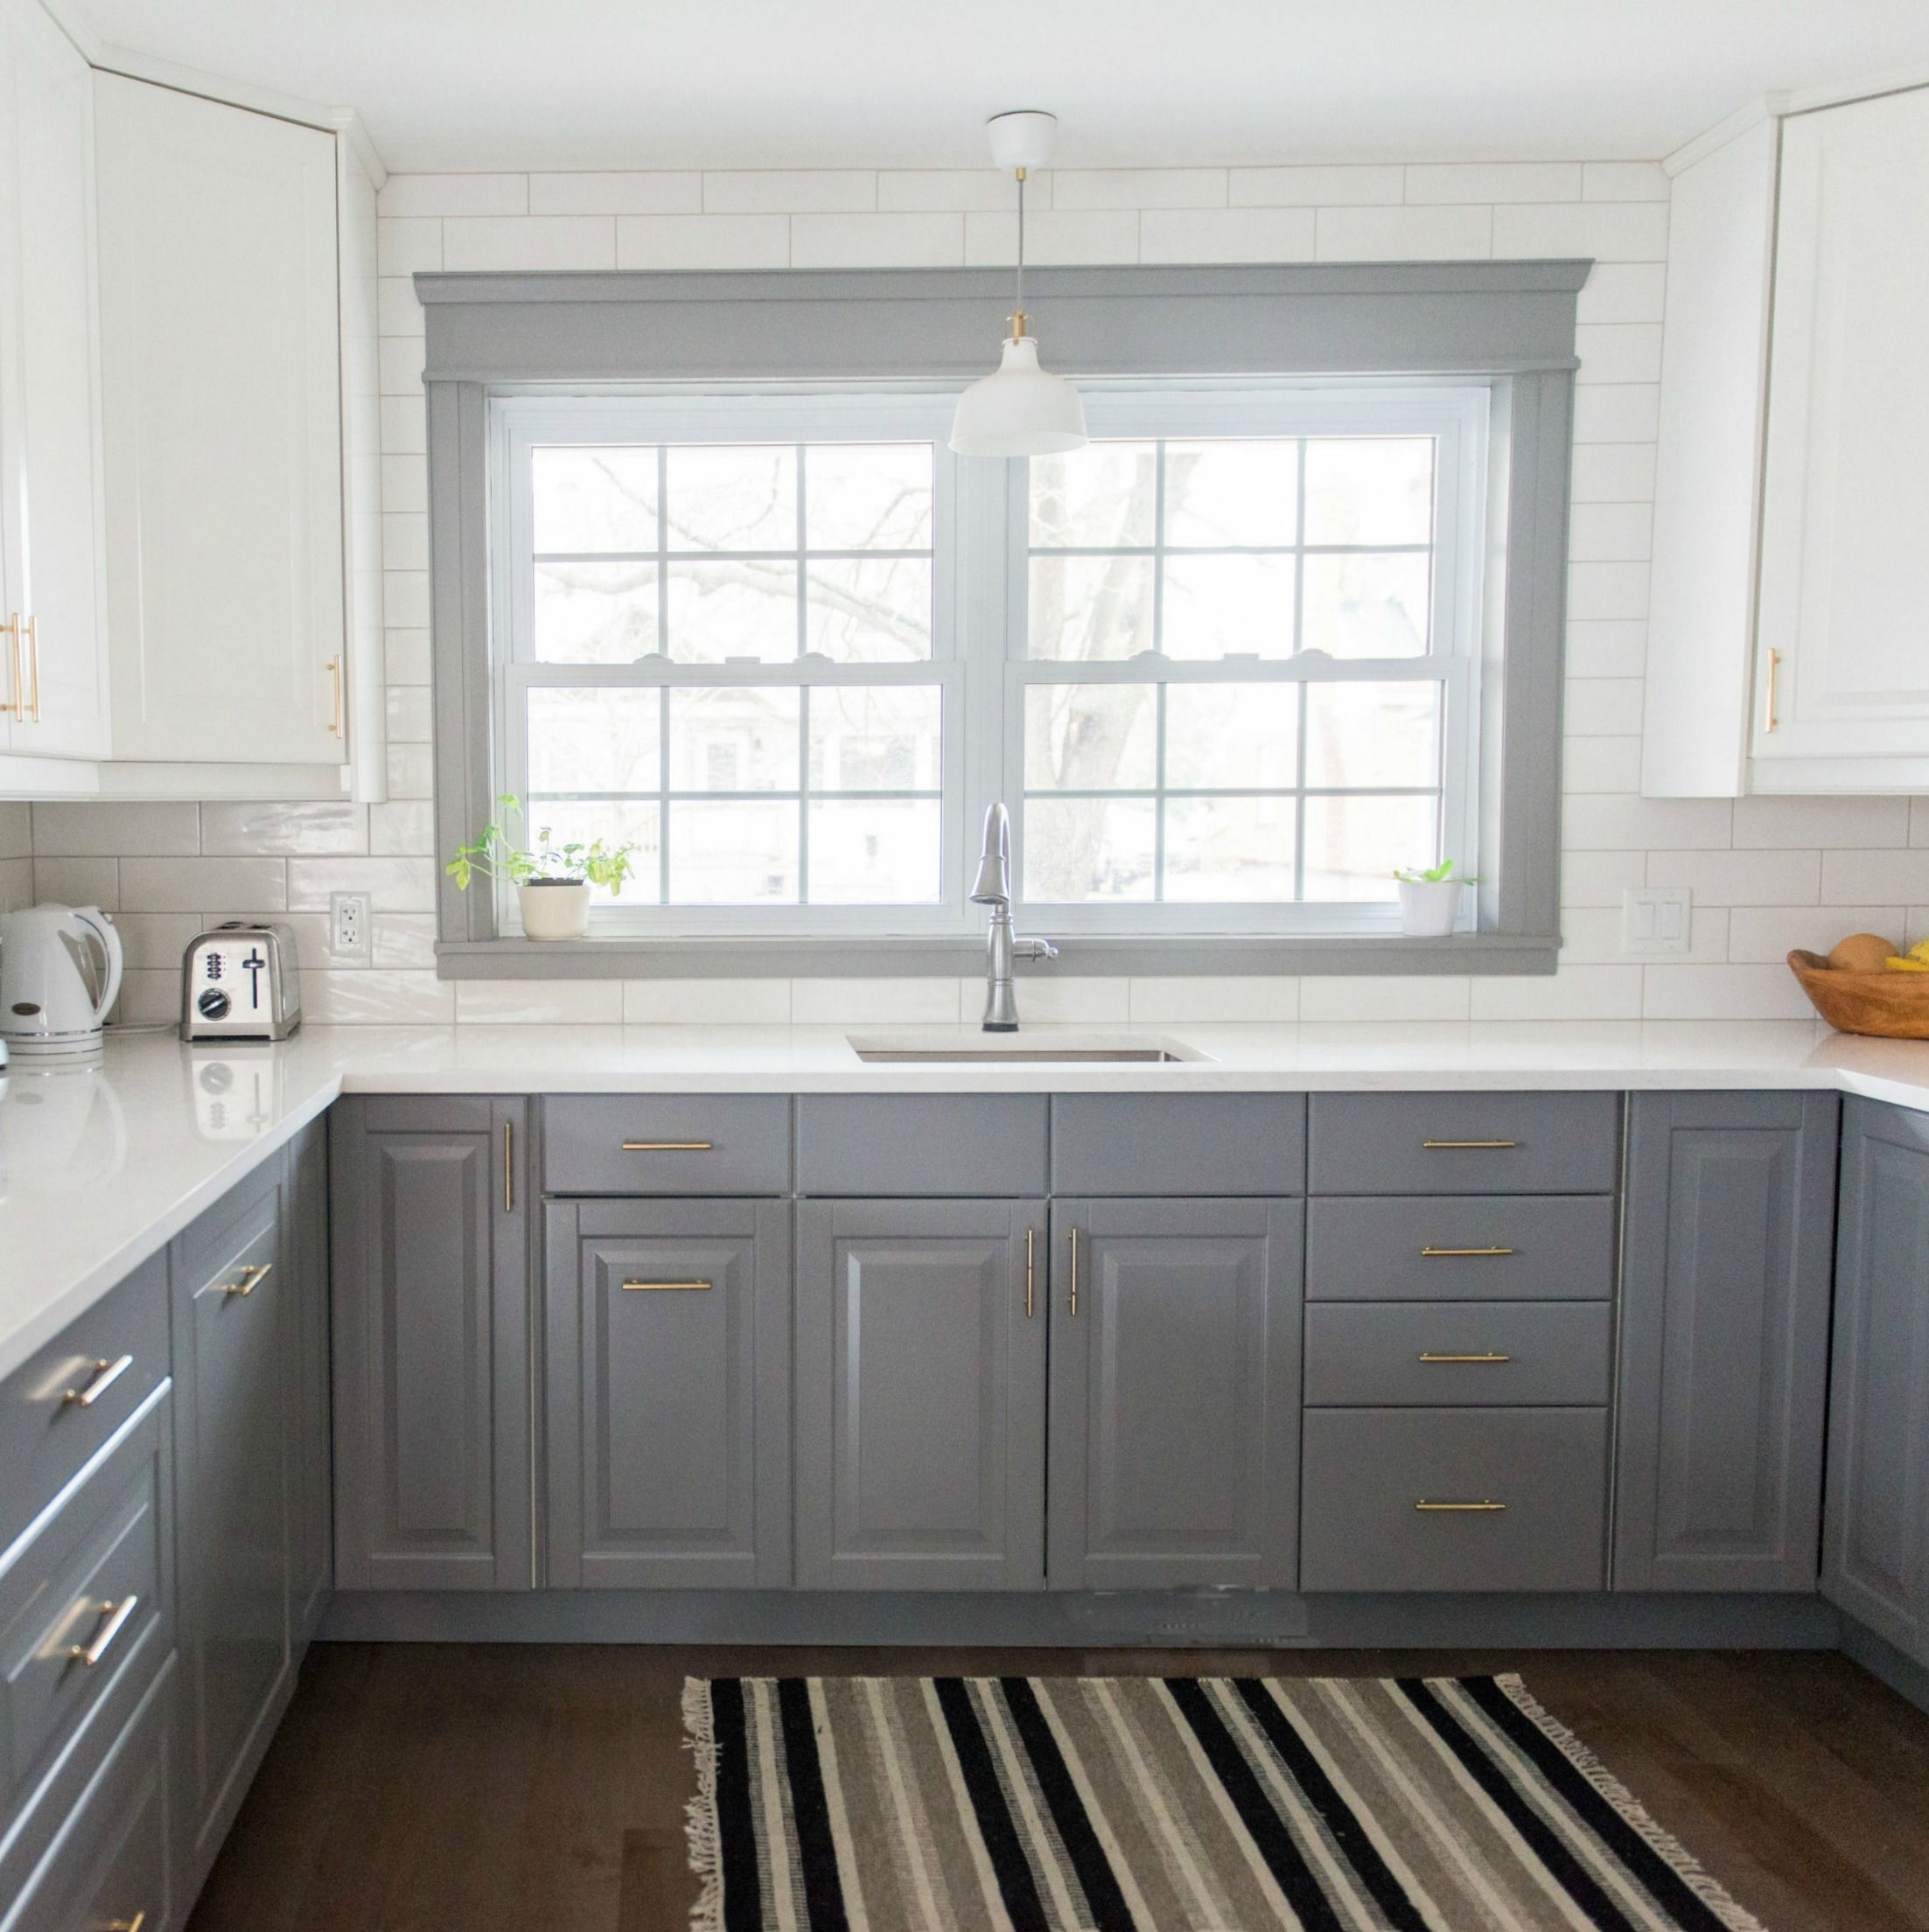 A gray and white ikea kitchen renovation check out this two toned kitchen design